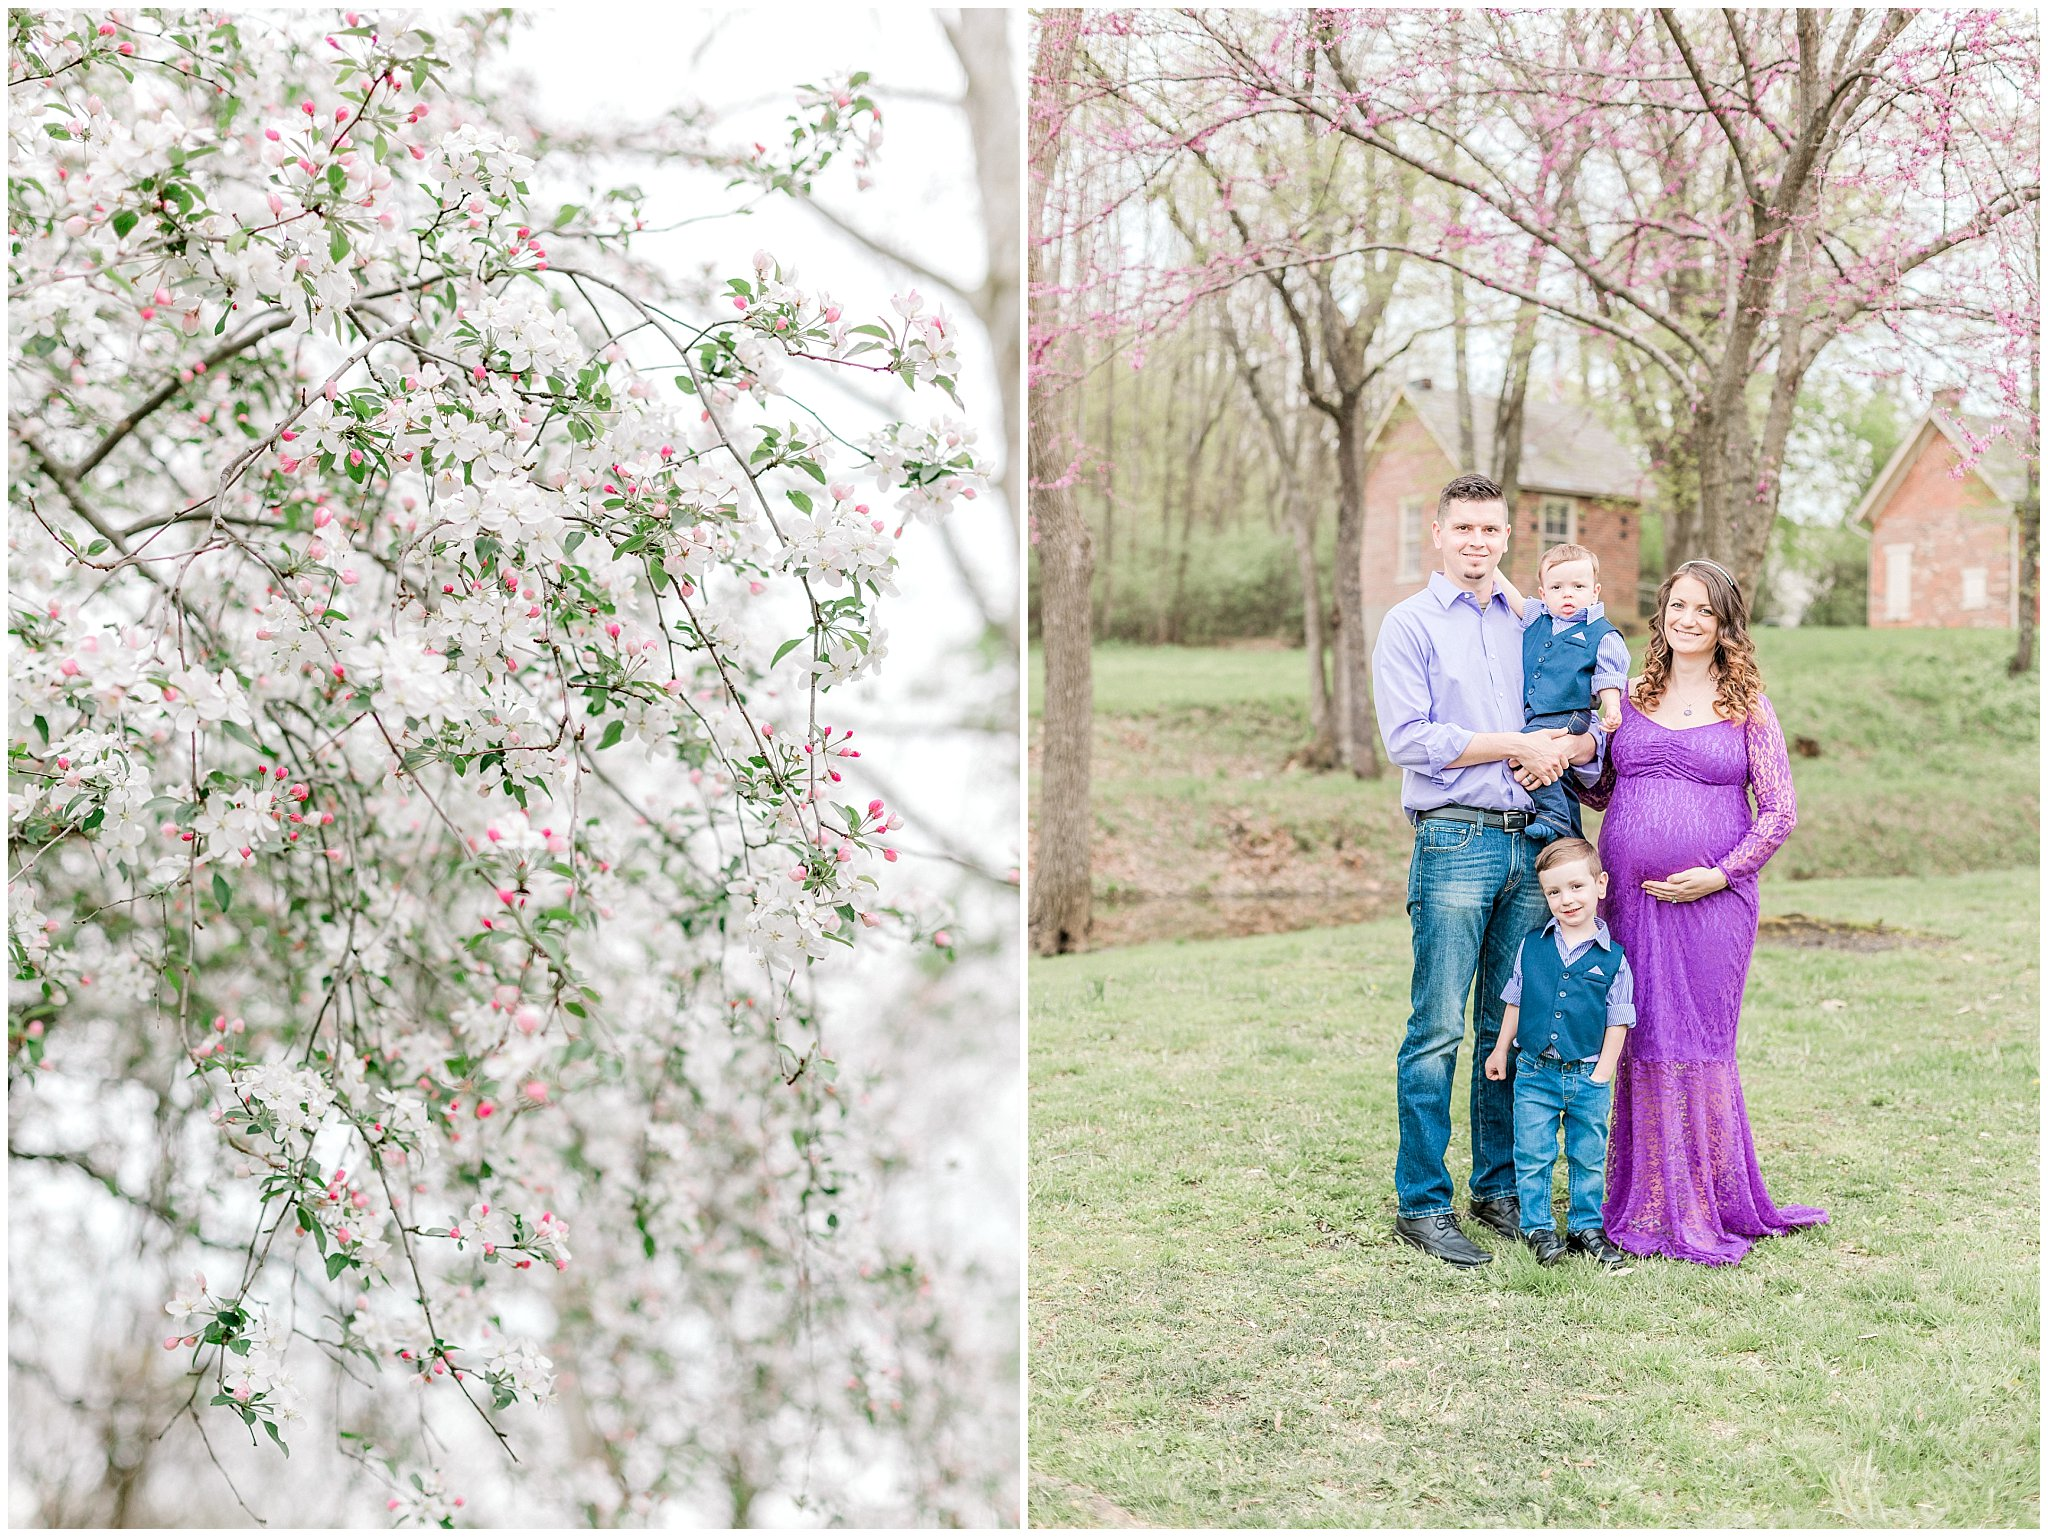 alburtis lockridge blue bonnet purple inspried maternity and family session pennsylvania wedding and lifestyle photographer.jpg